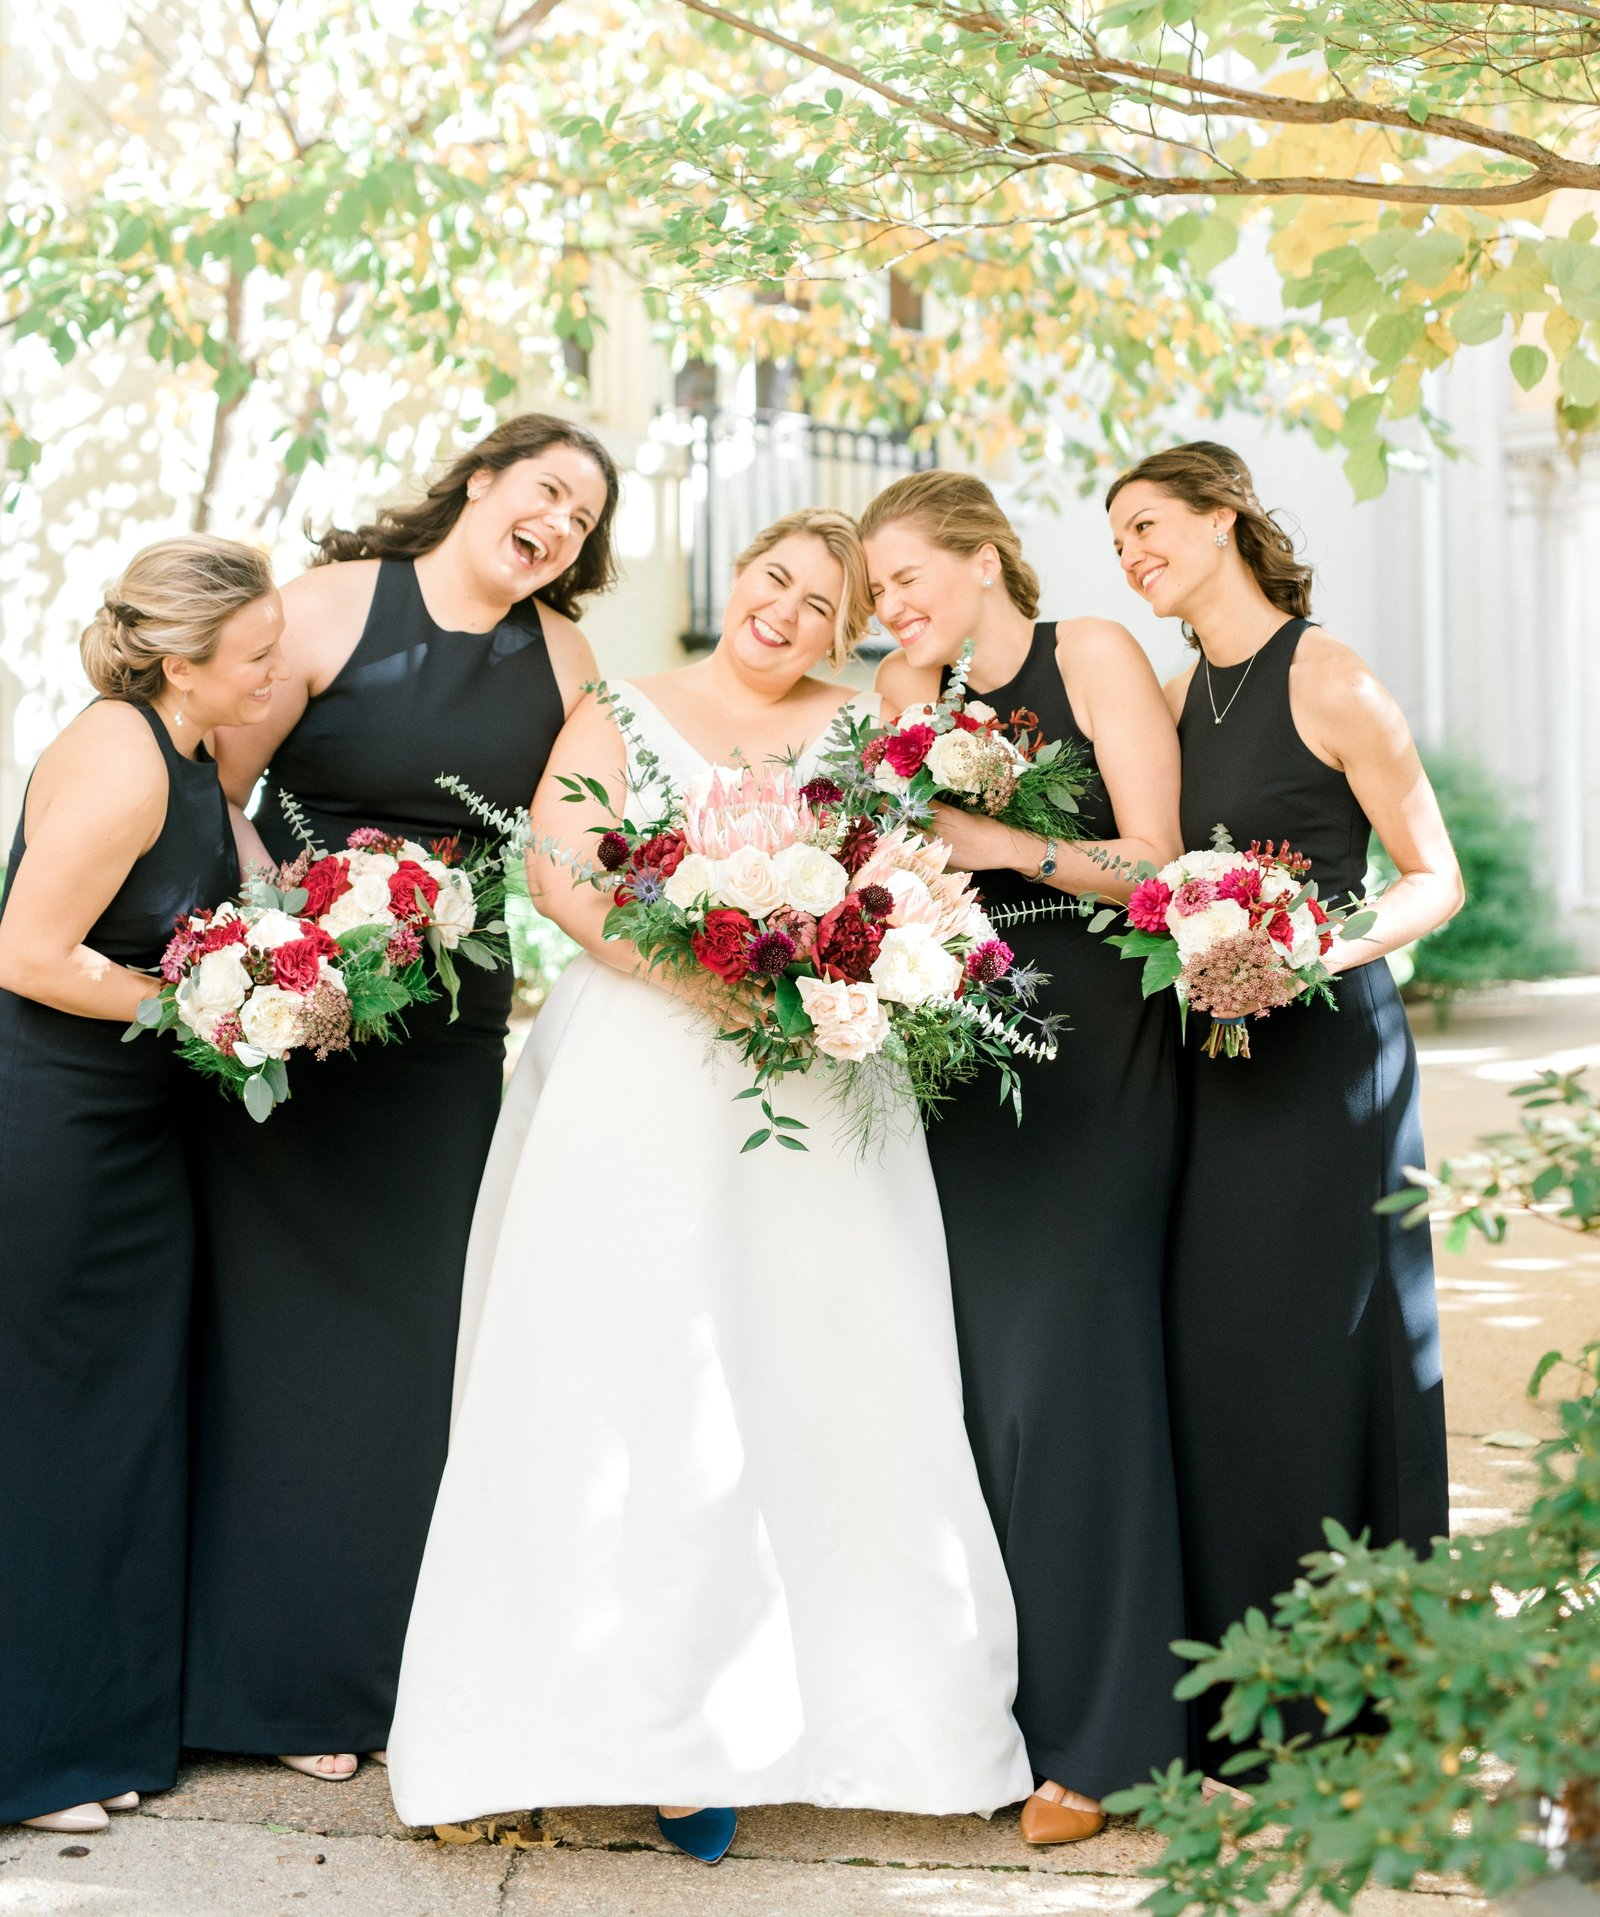 Bride and bridesmaids at Josephine Butler Parks Center in Washington, DC